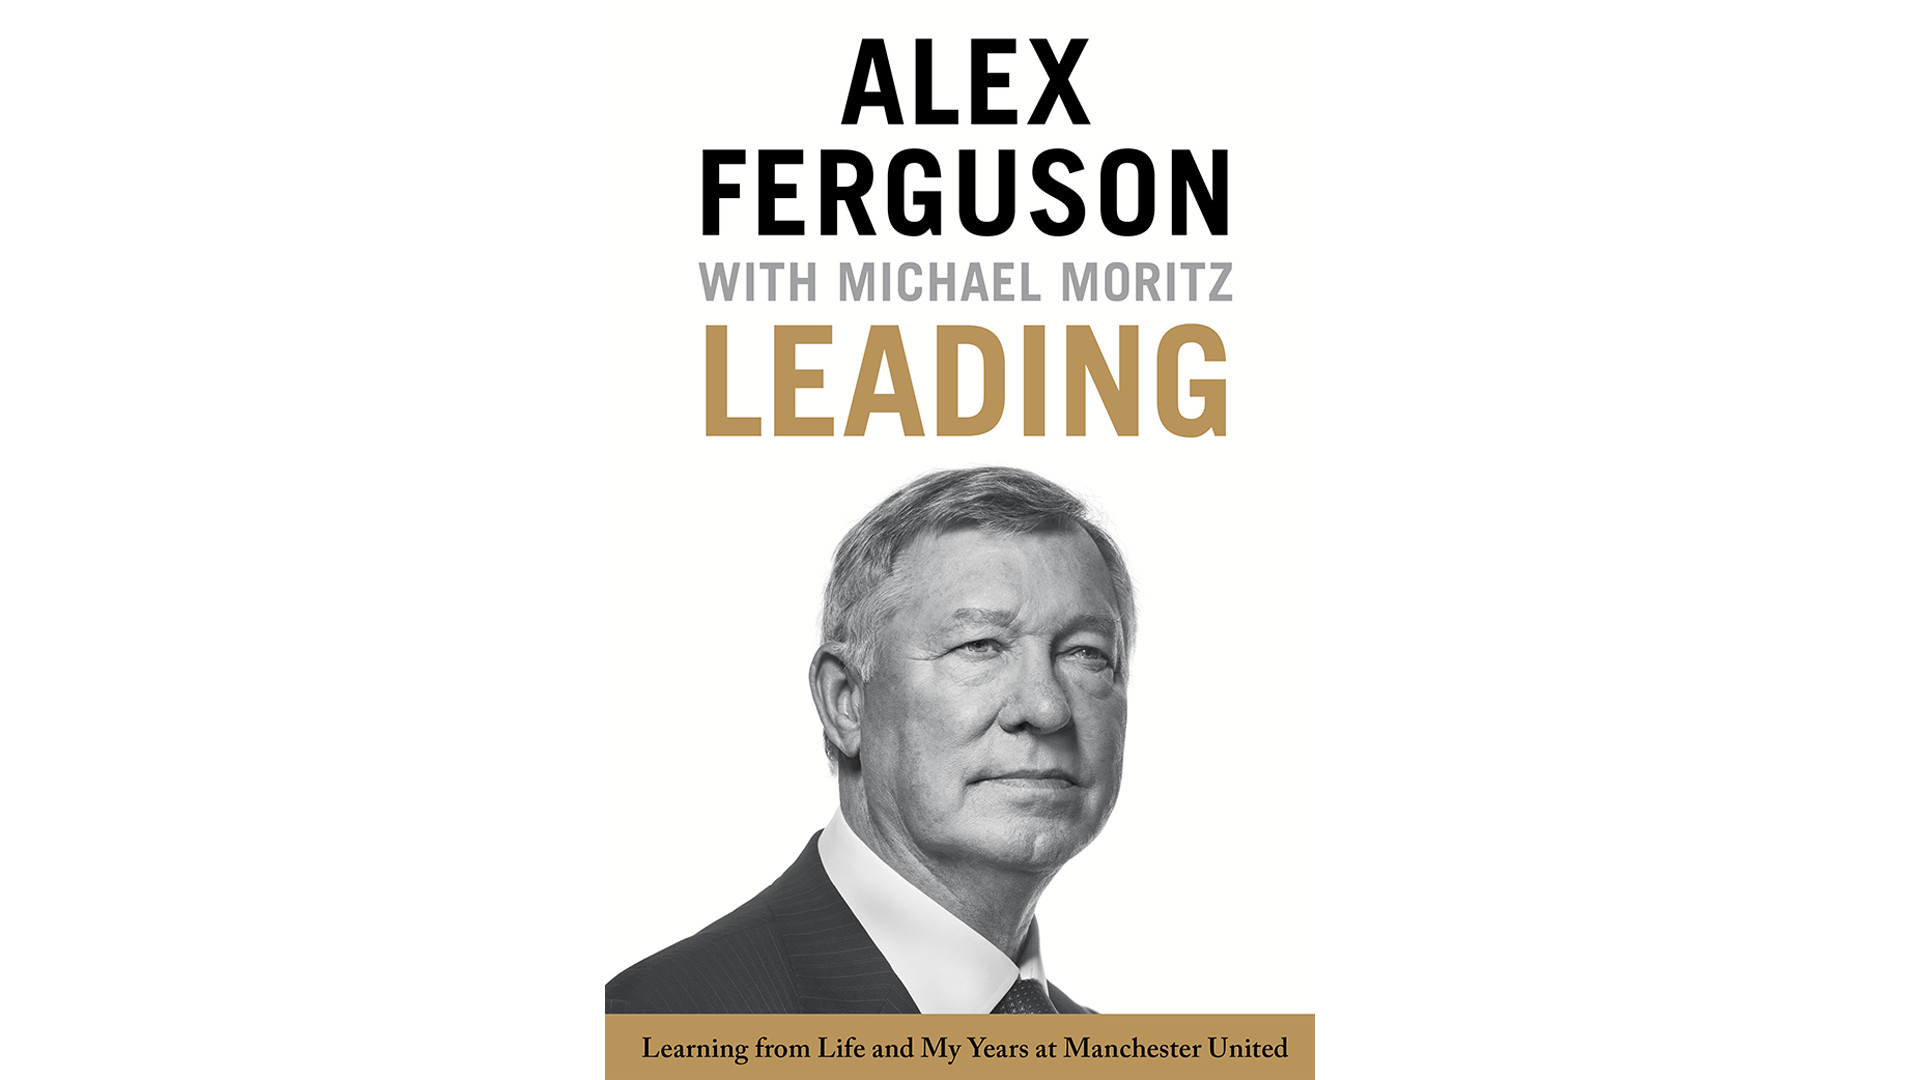 Leading-Alex-Ferguson-Michael-Moritz-book-cover